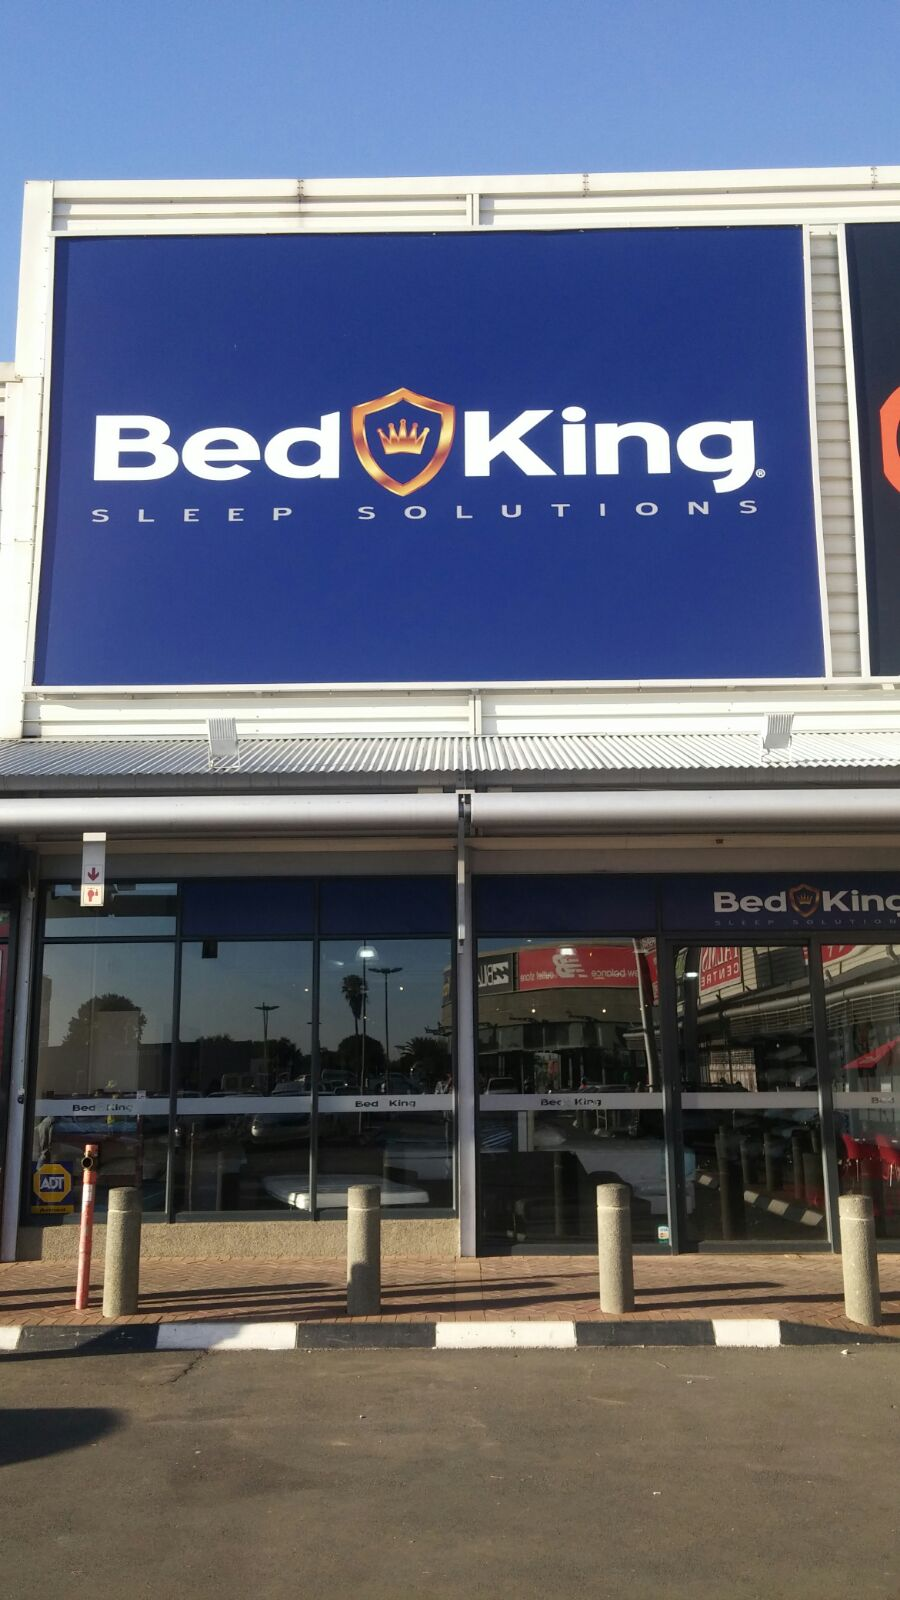 Beds Mattresses In Boksburg Bed King In Gauteng